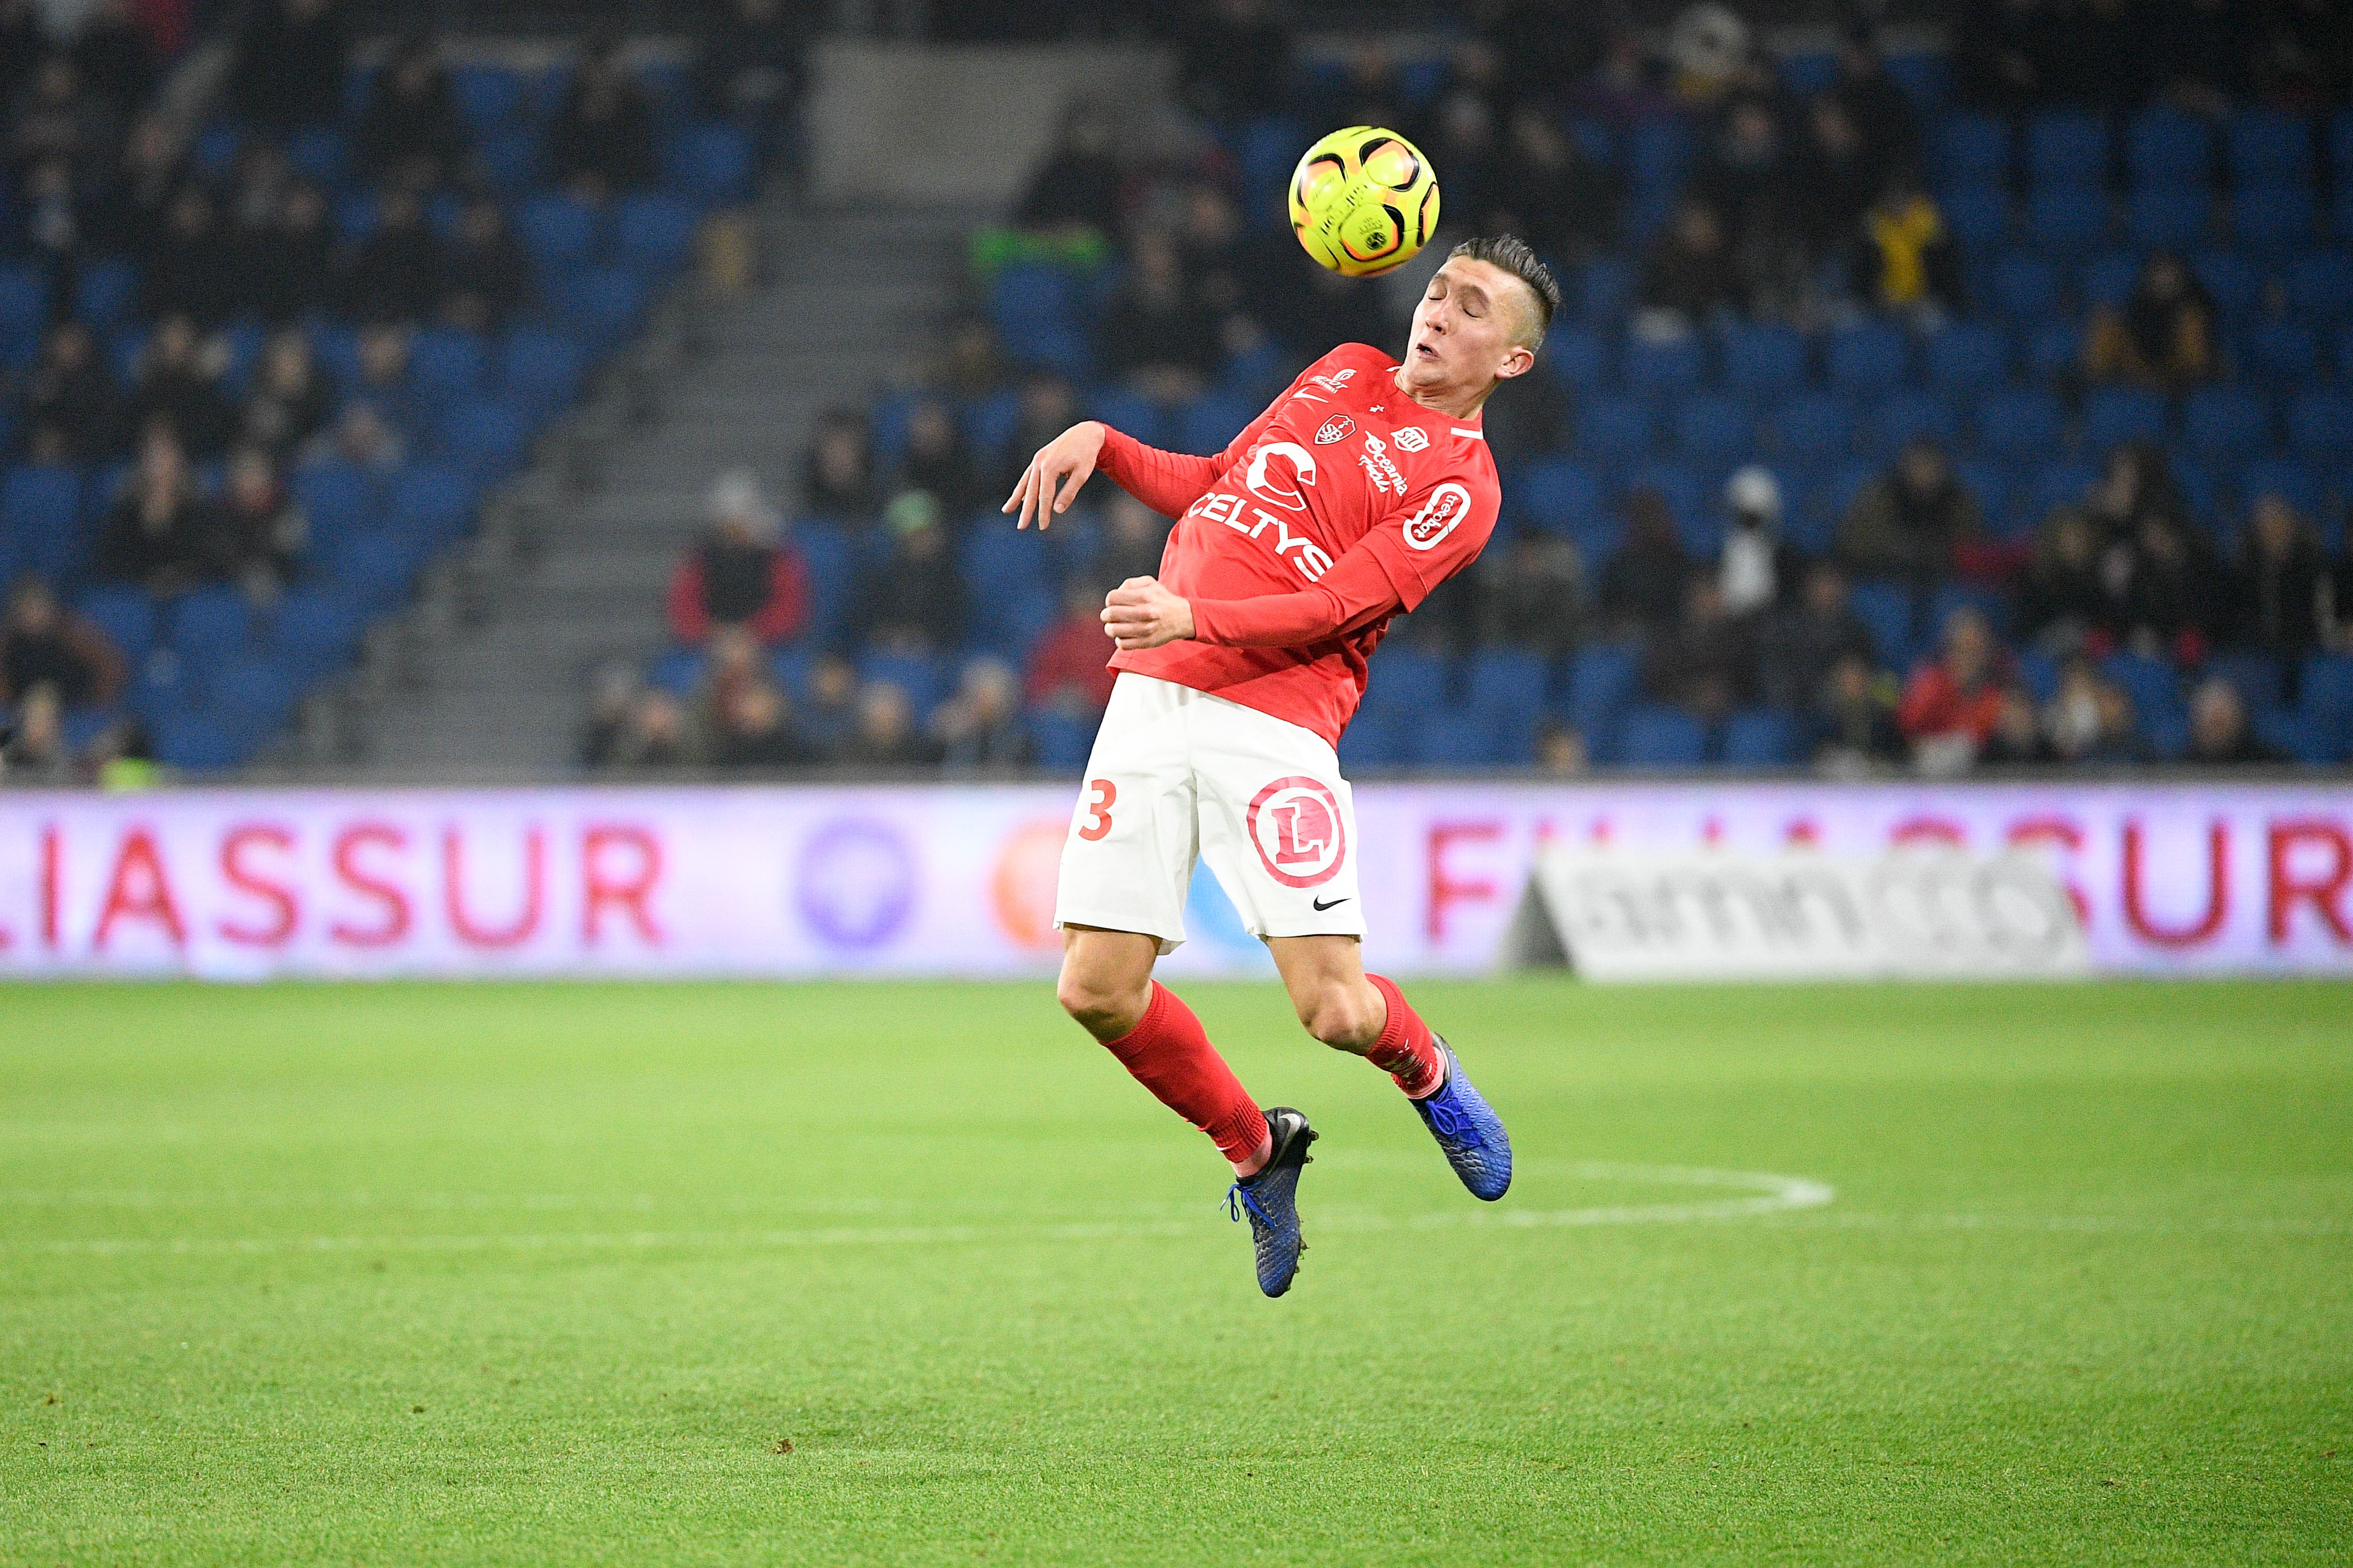 Football - Ligue 2 - Ligue 2 : Brest-Auxerre en direct